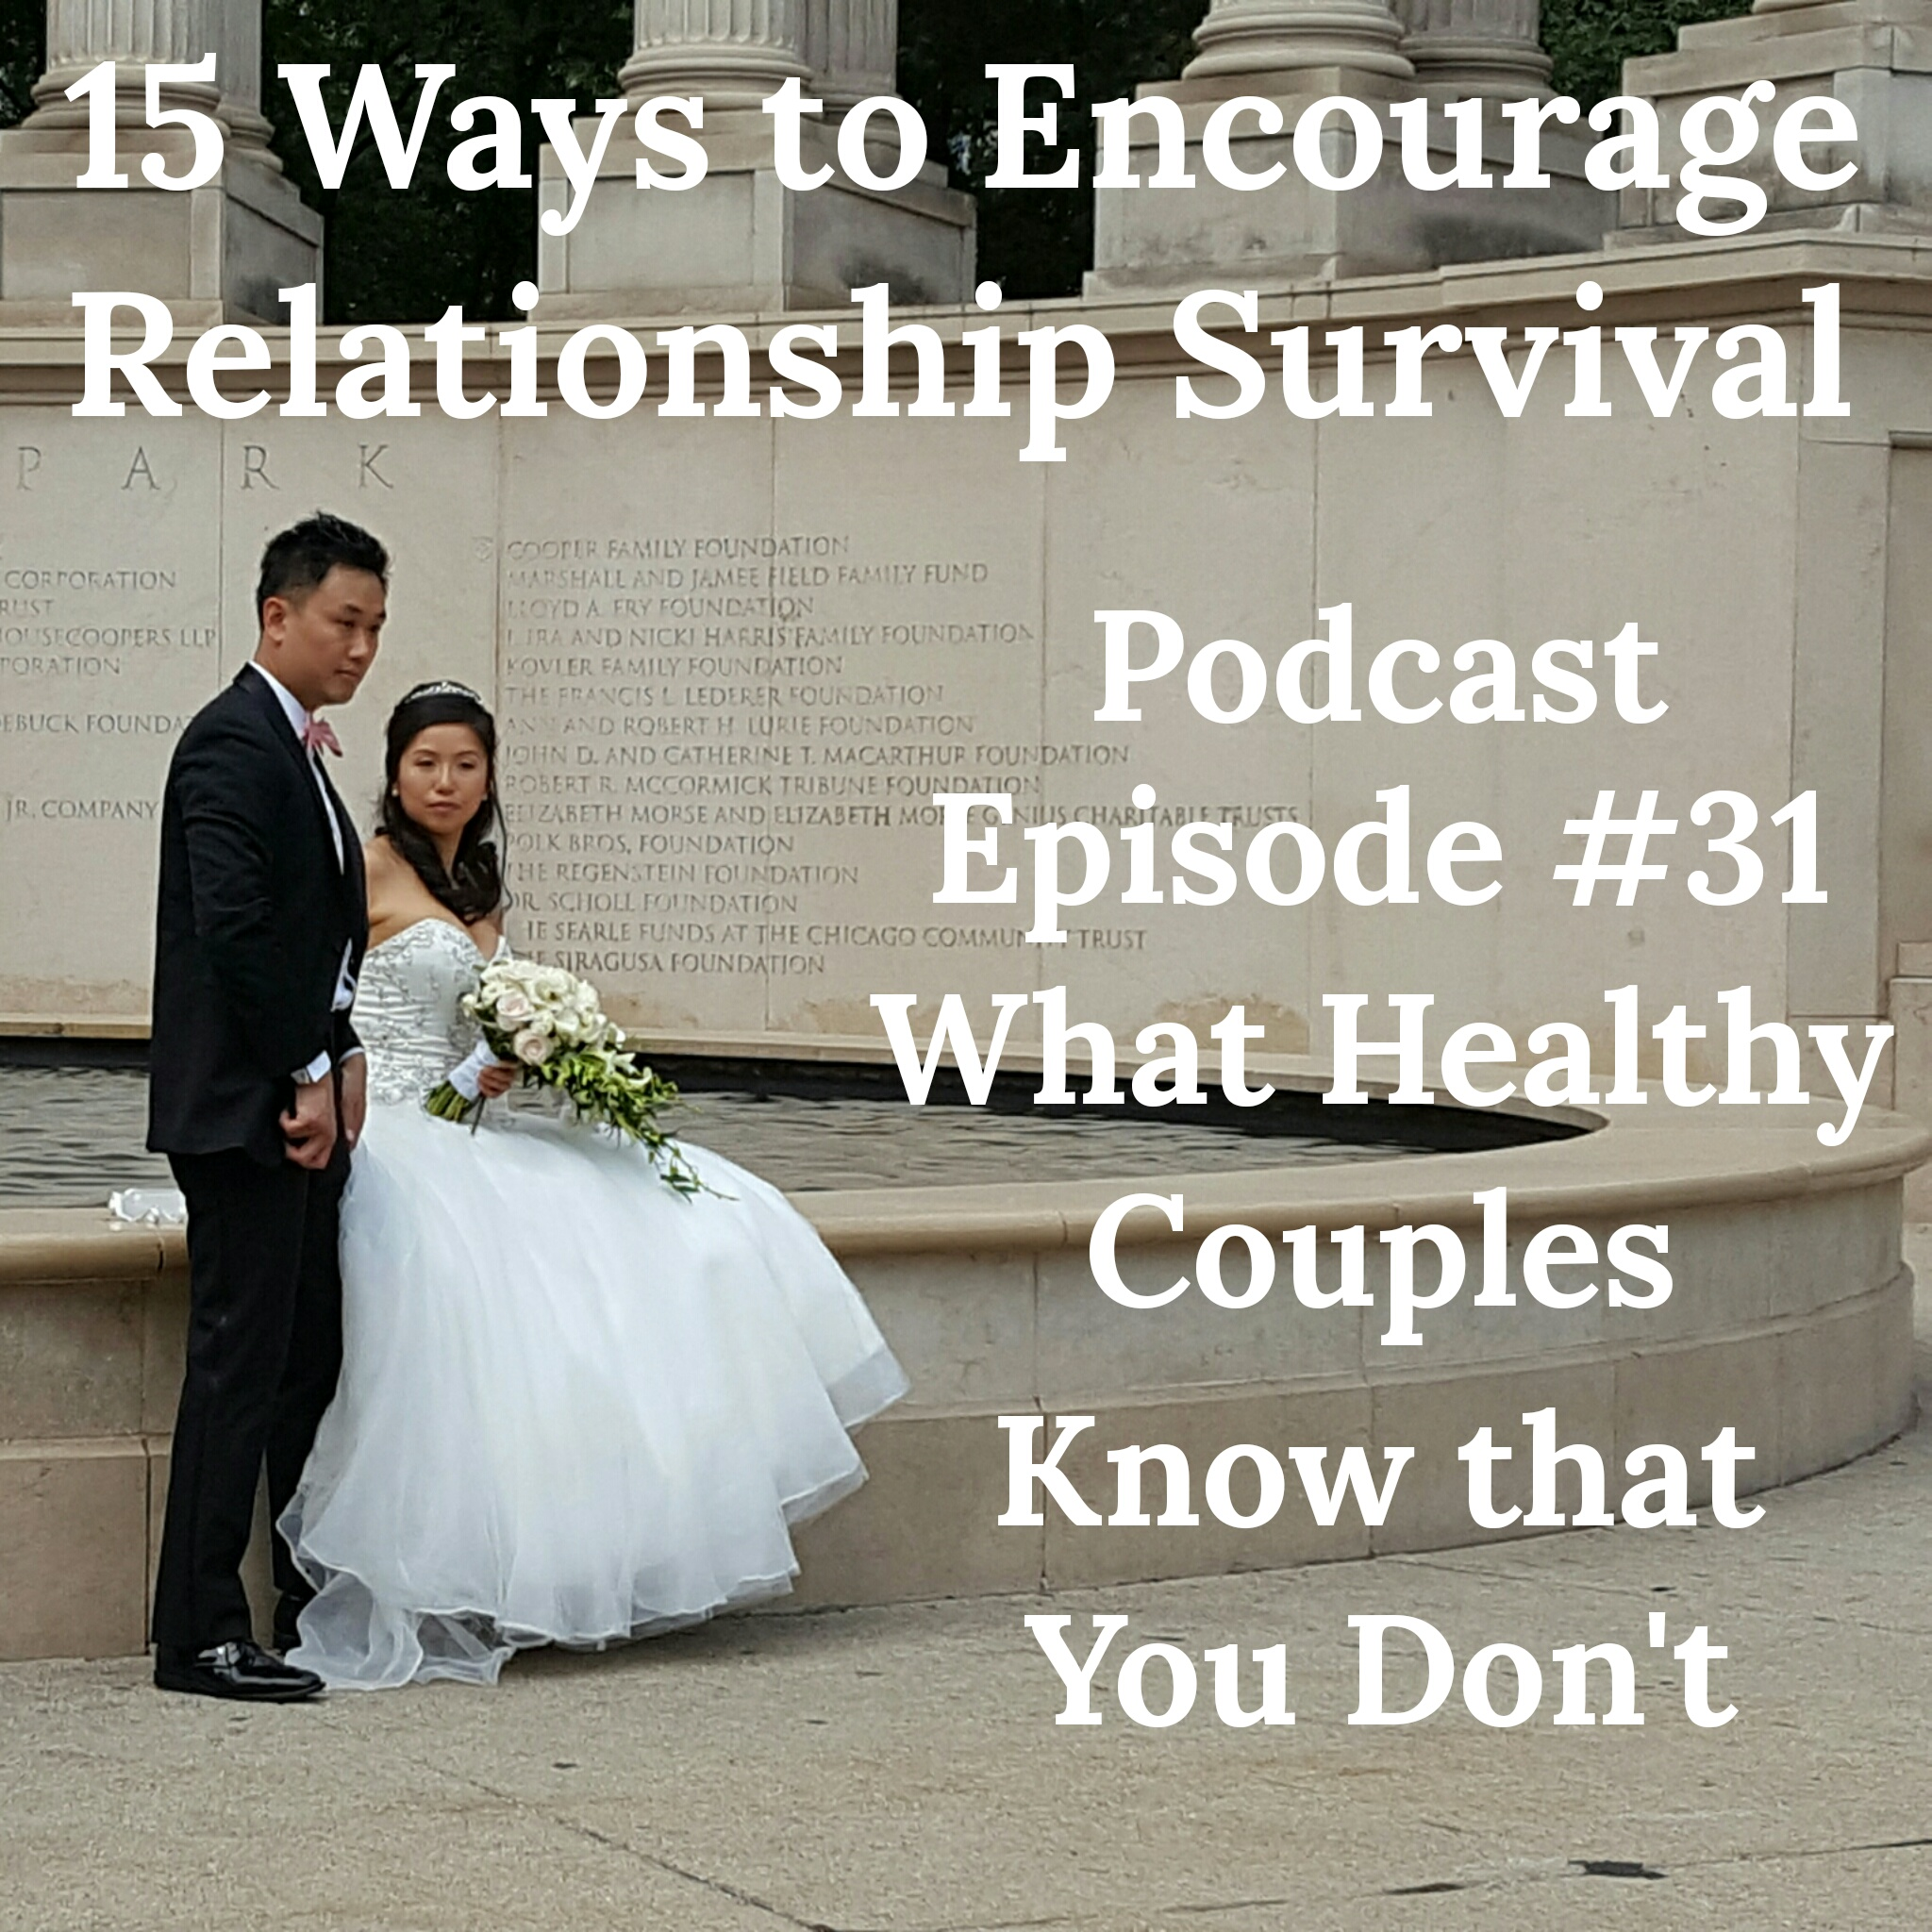 What Healthy Couples Know That You Don't - 15 Ways to Encourage Relationship Survival